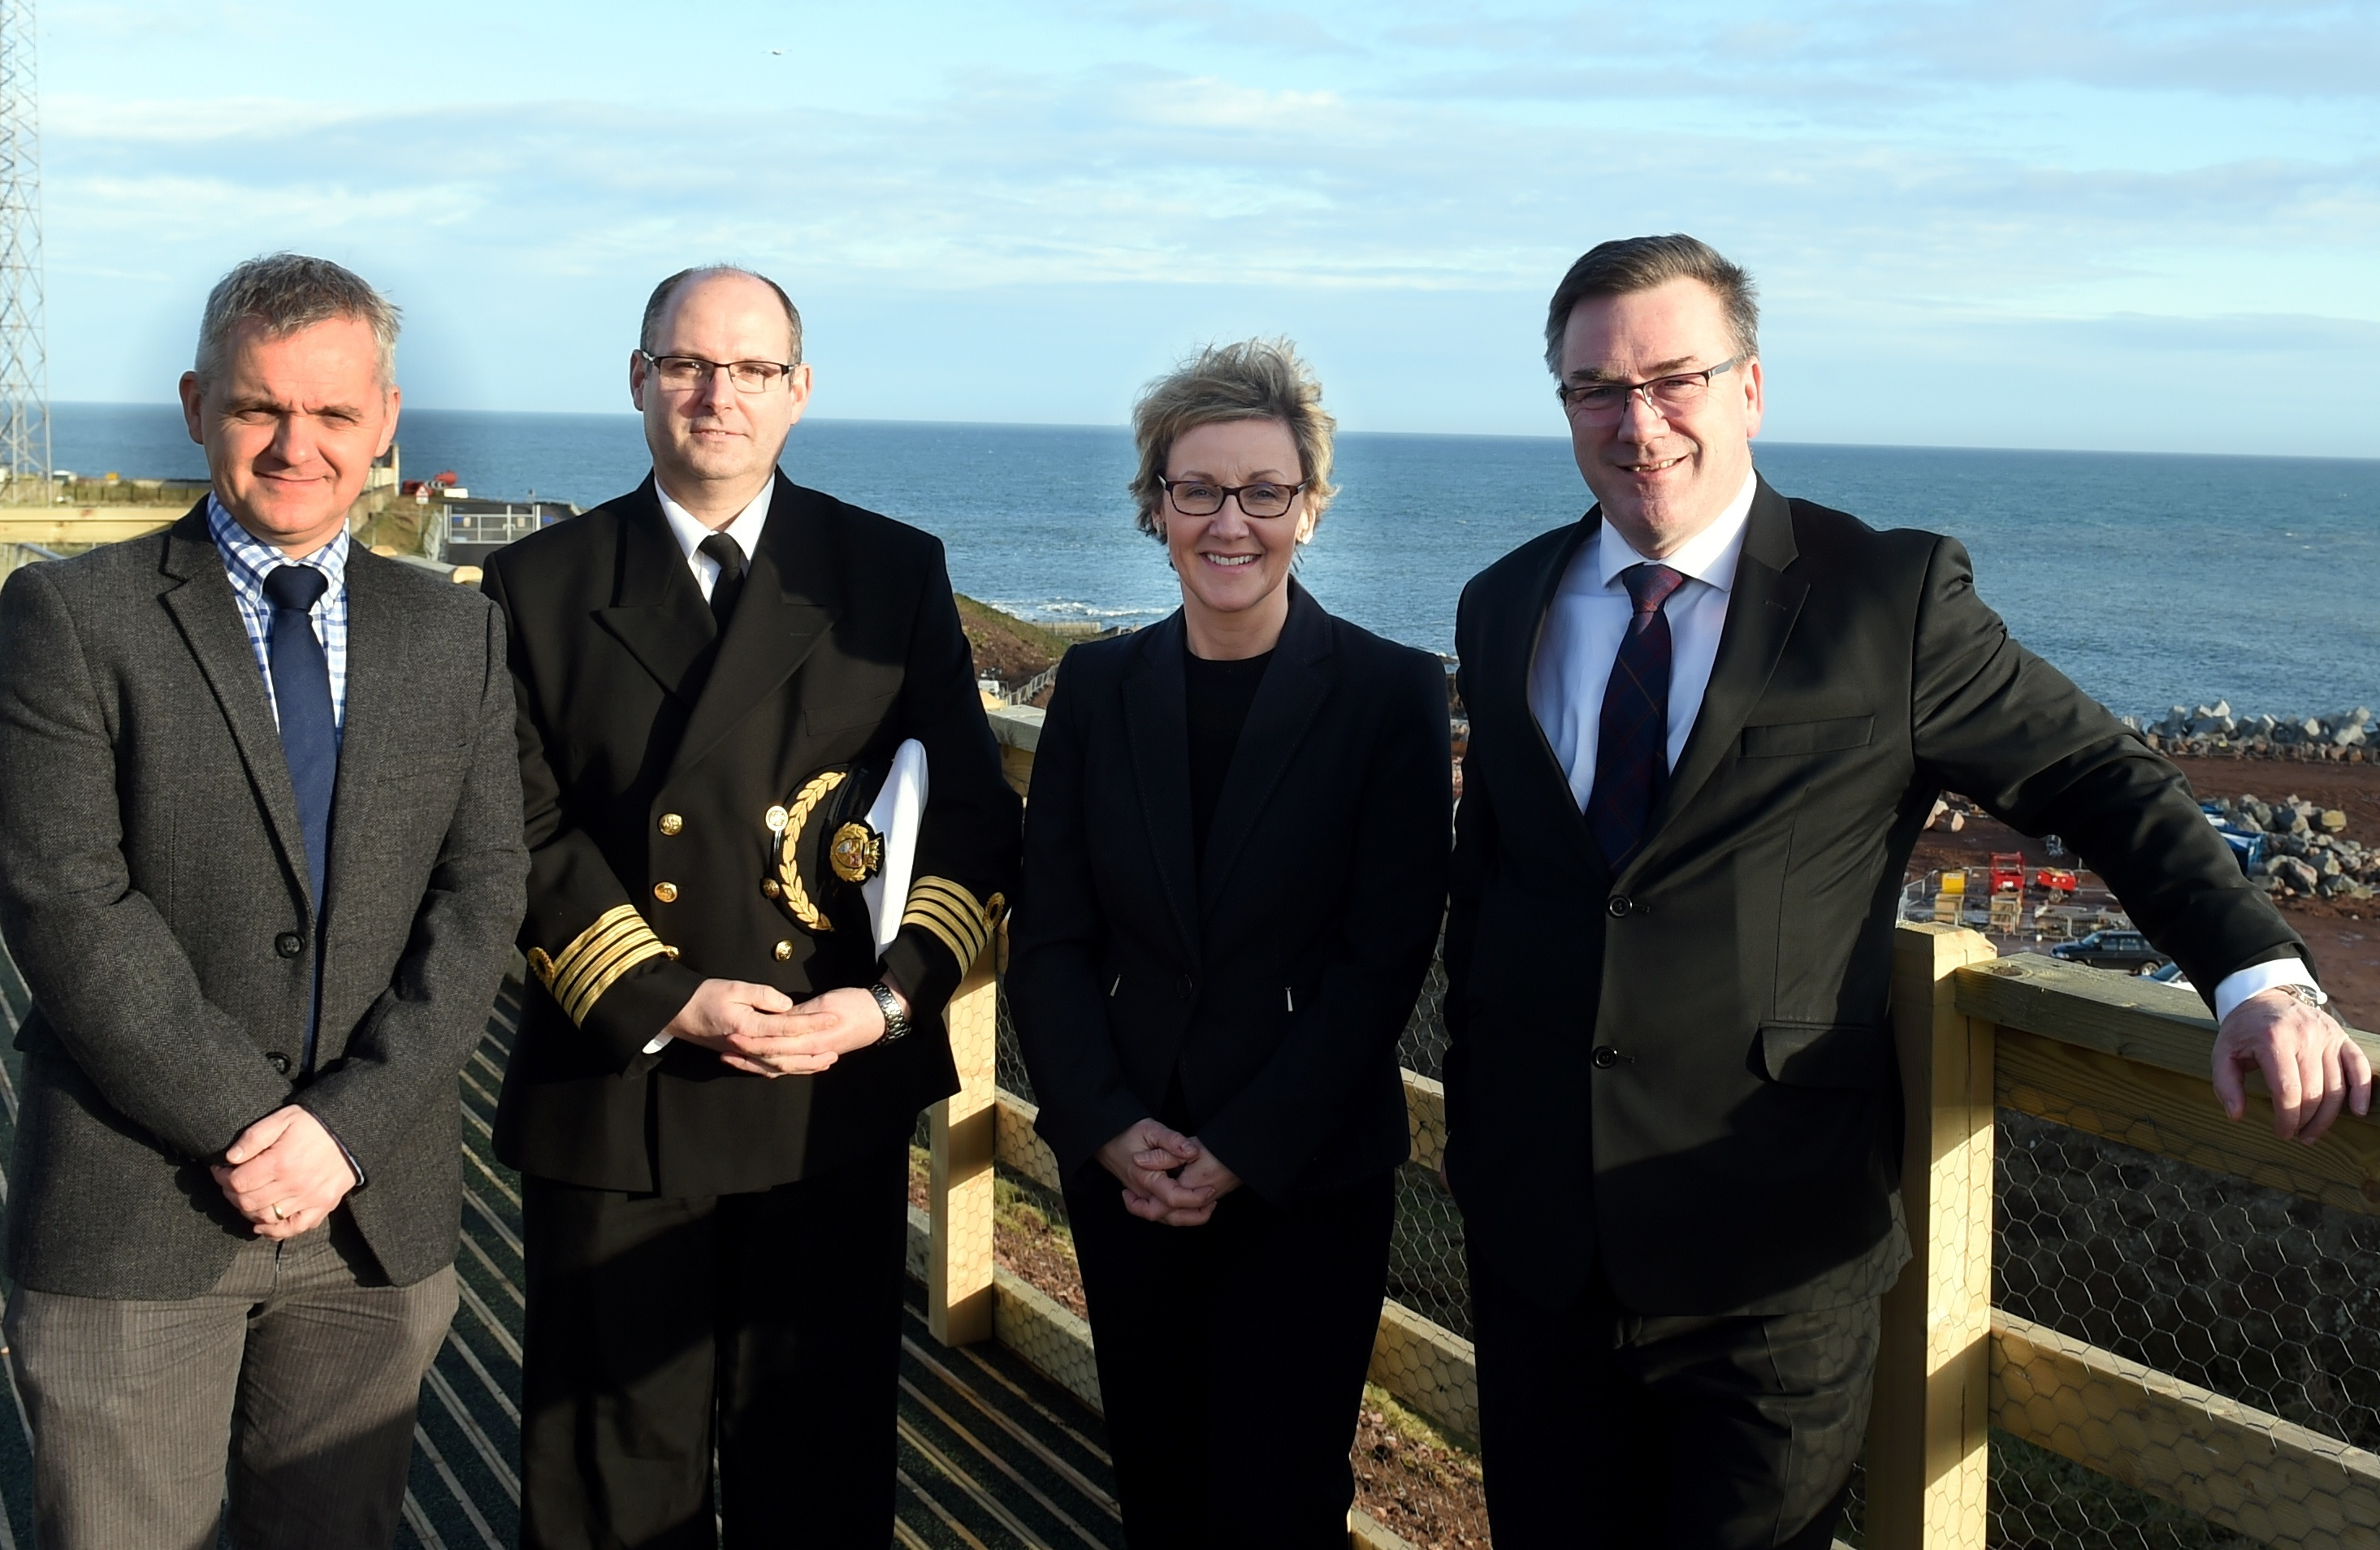 (L-R)Keith Young, engineering director: Captain Jeff Gaskin, harbour master, Chris Bain, external relations director and Matt North, commercial director (Picture by Jim Irvine )